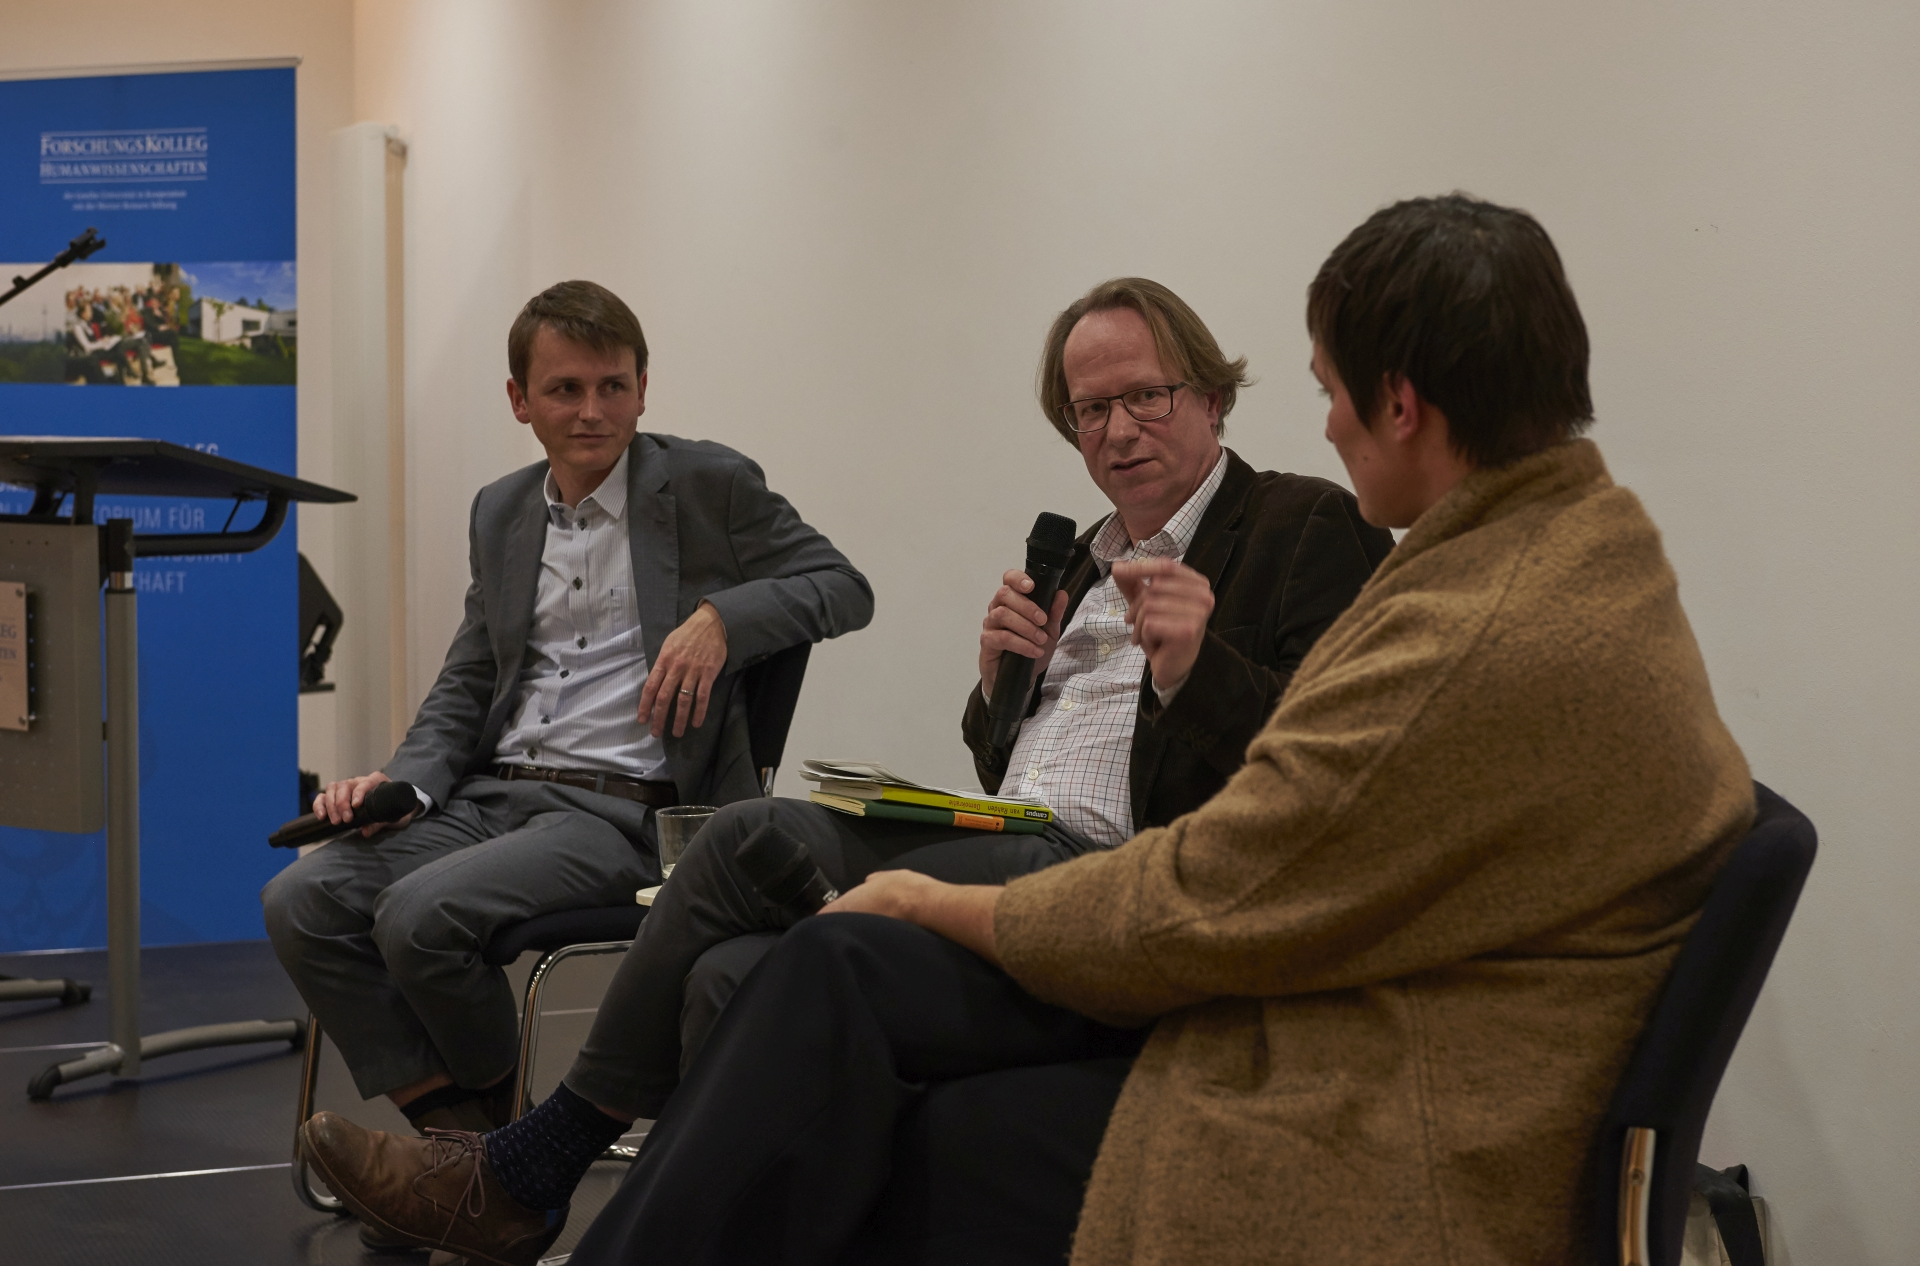 Book launch at the institute: The historian Till van Rahden in conversation with Nicole Deitelhoff, political scientist, and Johannes Völz, Americanist, about his book »Demokratie. Eine gefährdete Lebensform«. (Photo: Stefanie Wetzel, December 2019)